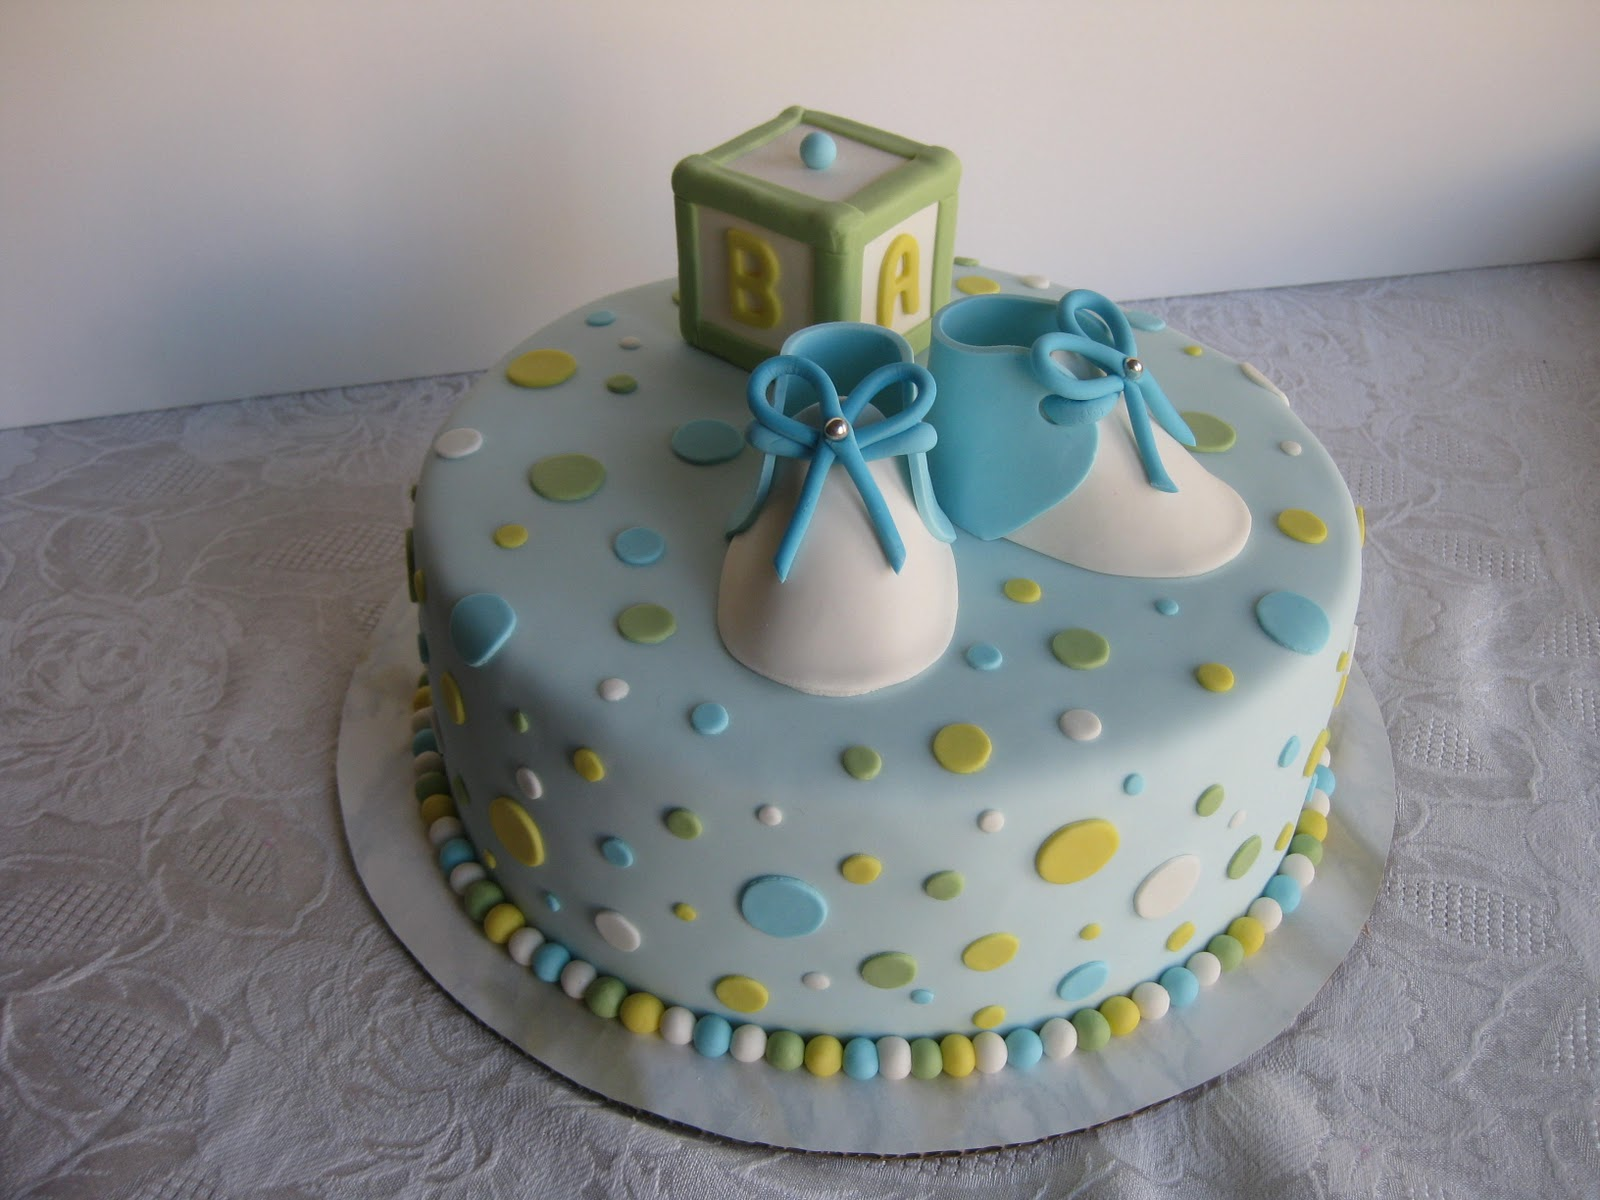 Cake Ideas For New Baby : baby-shower-boy-girl-cakes-cupcakes-mumbai-12 - Cakes and ...